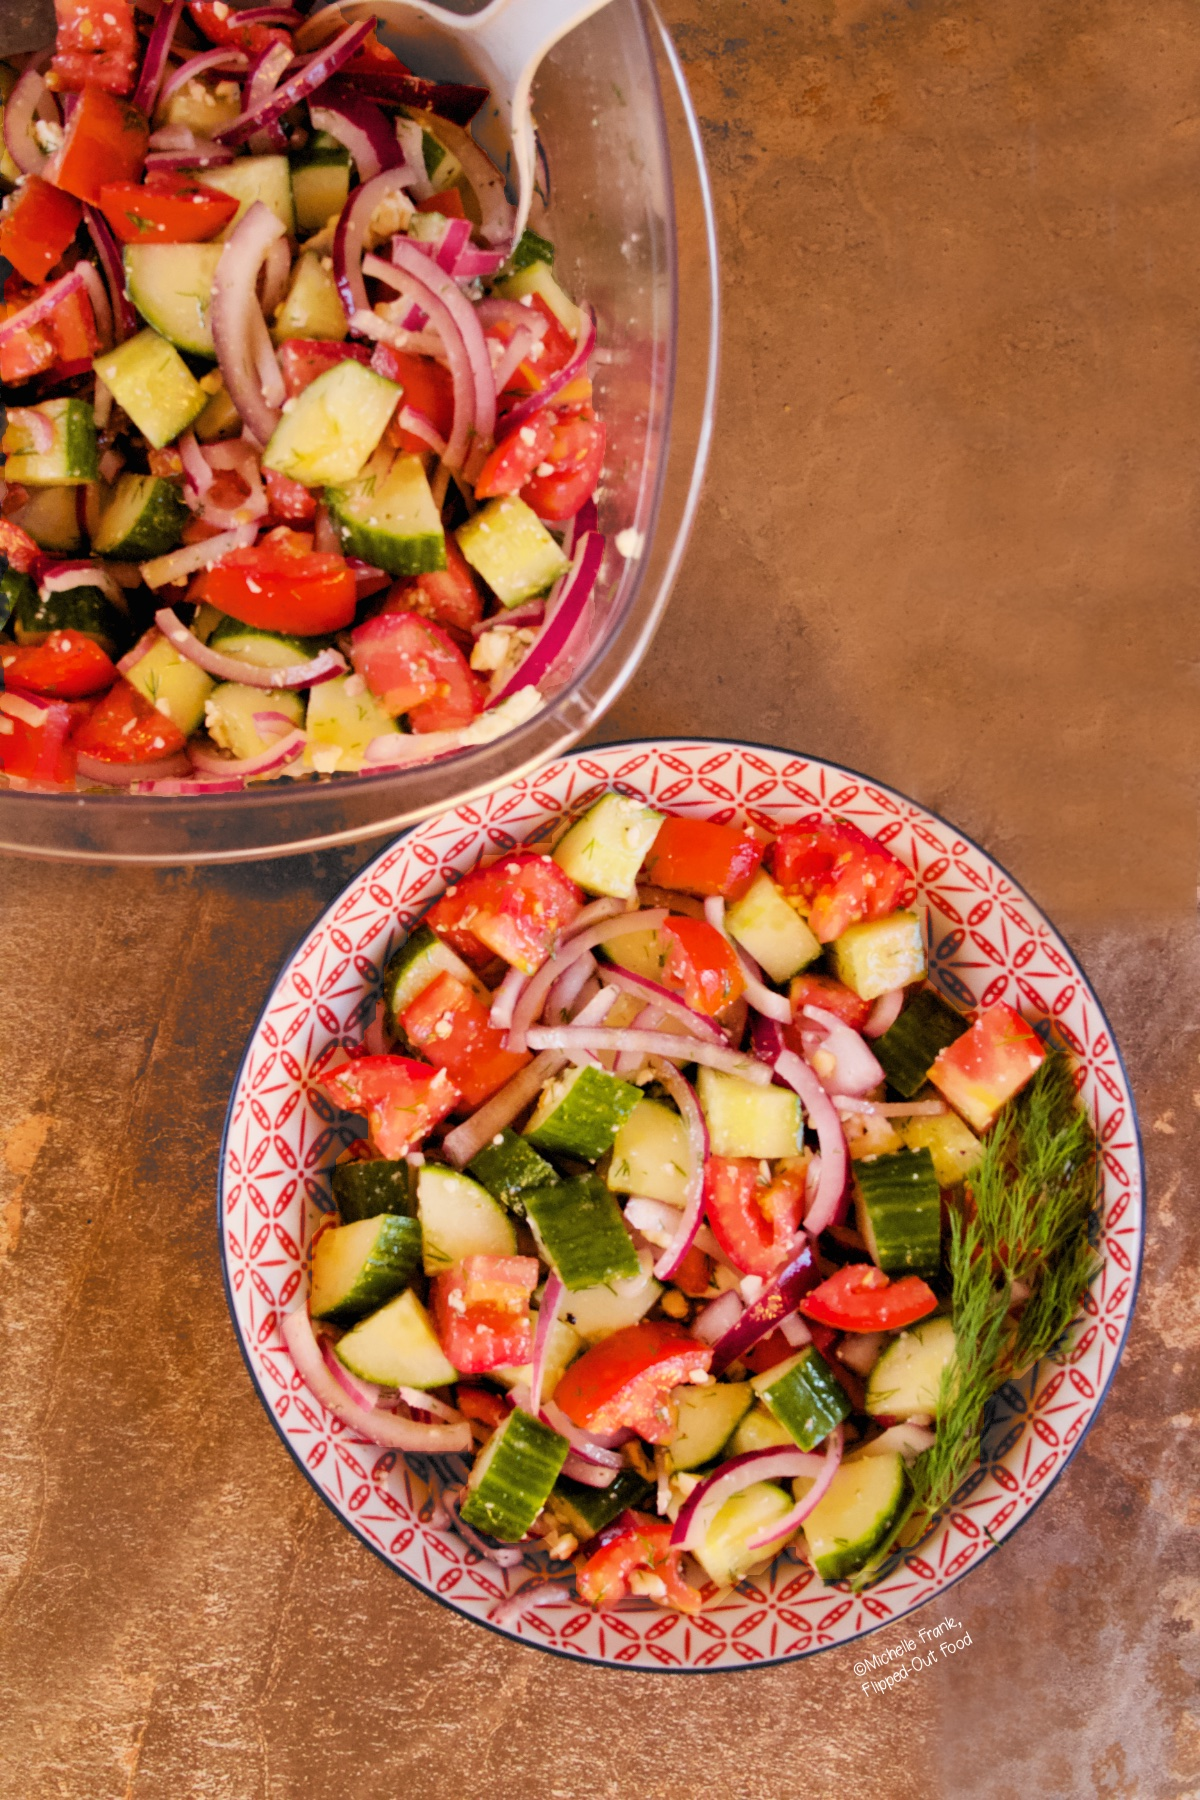 Cucumber-Tomato-Onion Salad in a red and white porcelain bowl. The salad is garnished with a sprig of dill, and sits in front of a storage container with more of the salad.